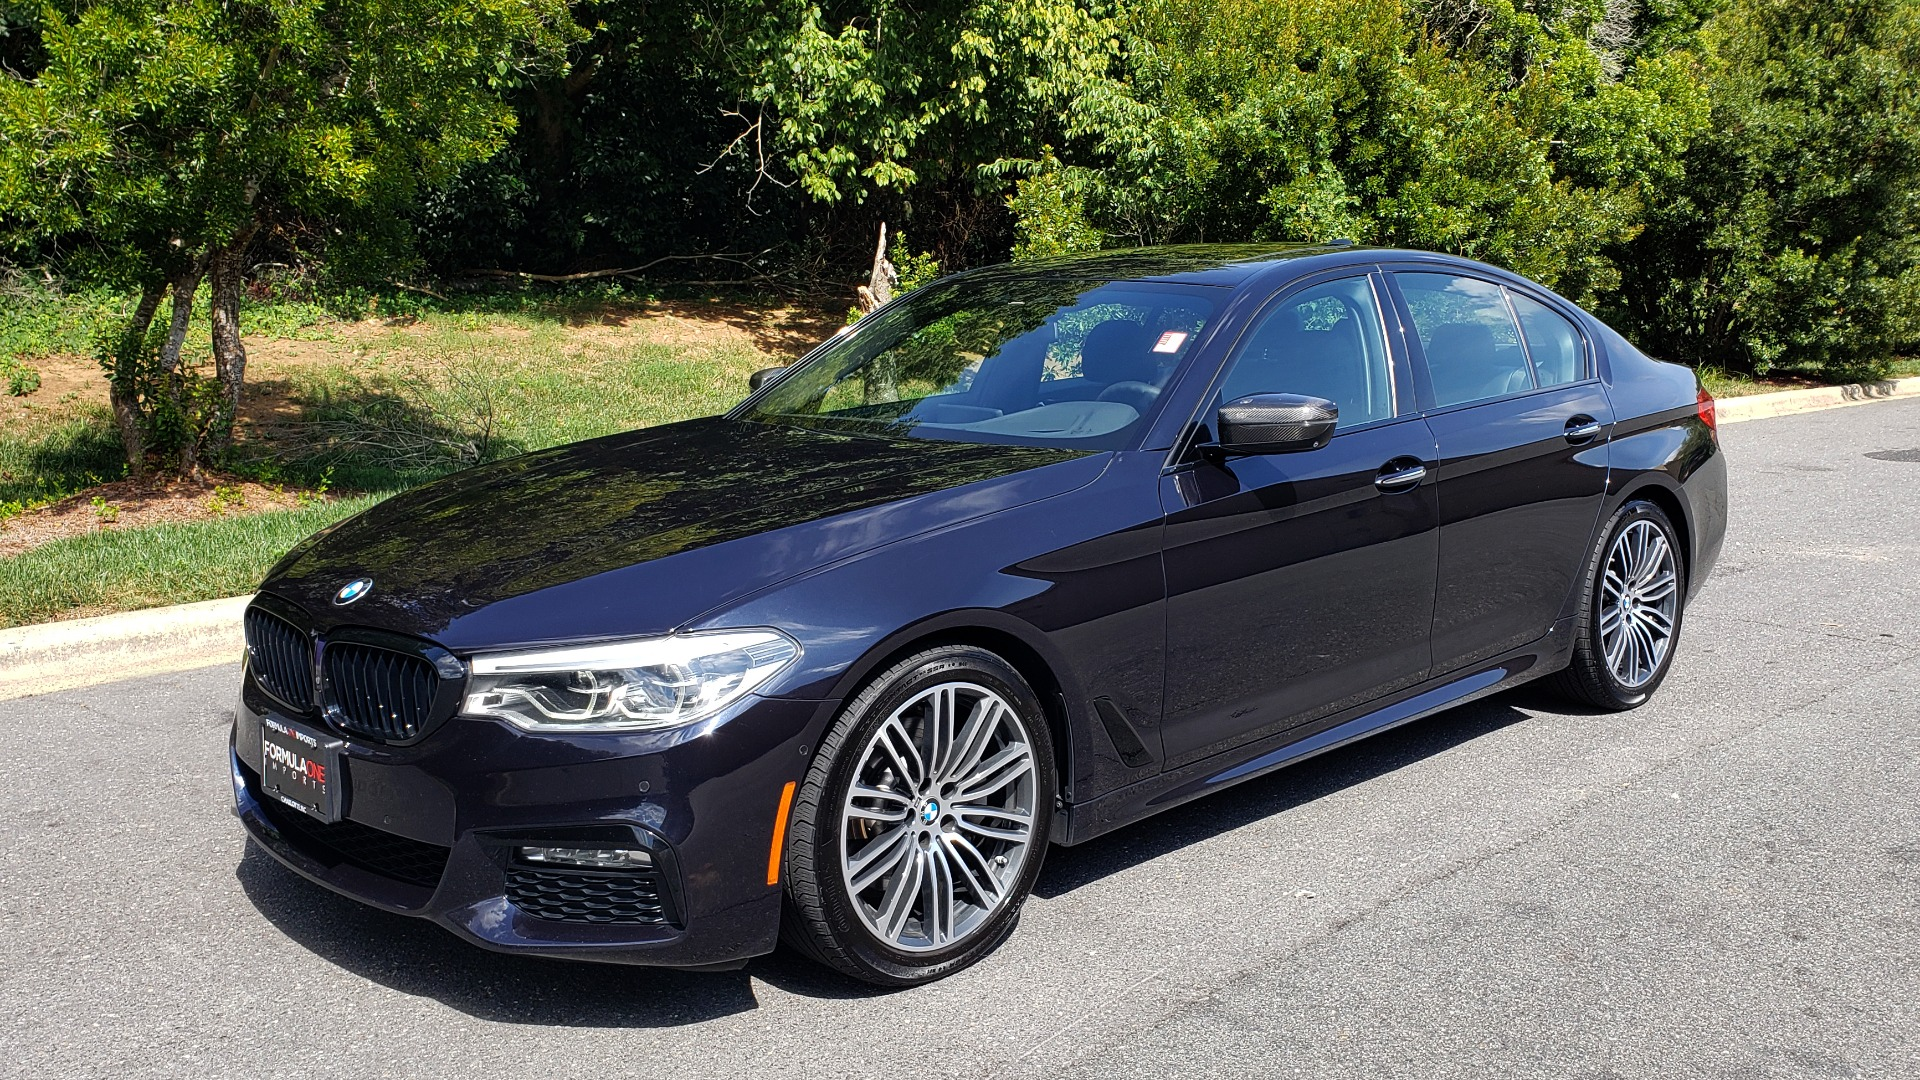 Used 2017 BMW 5 SERIES 540I XDRIVE PREMIUM / NAV / DRVR ASST PLUS / CLD WTHR / SUNROOF / REARVIEW for sale Sold at Formula Imports in Charlotte NC 28227 1